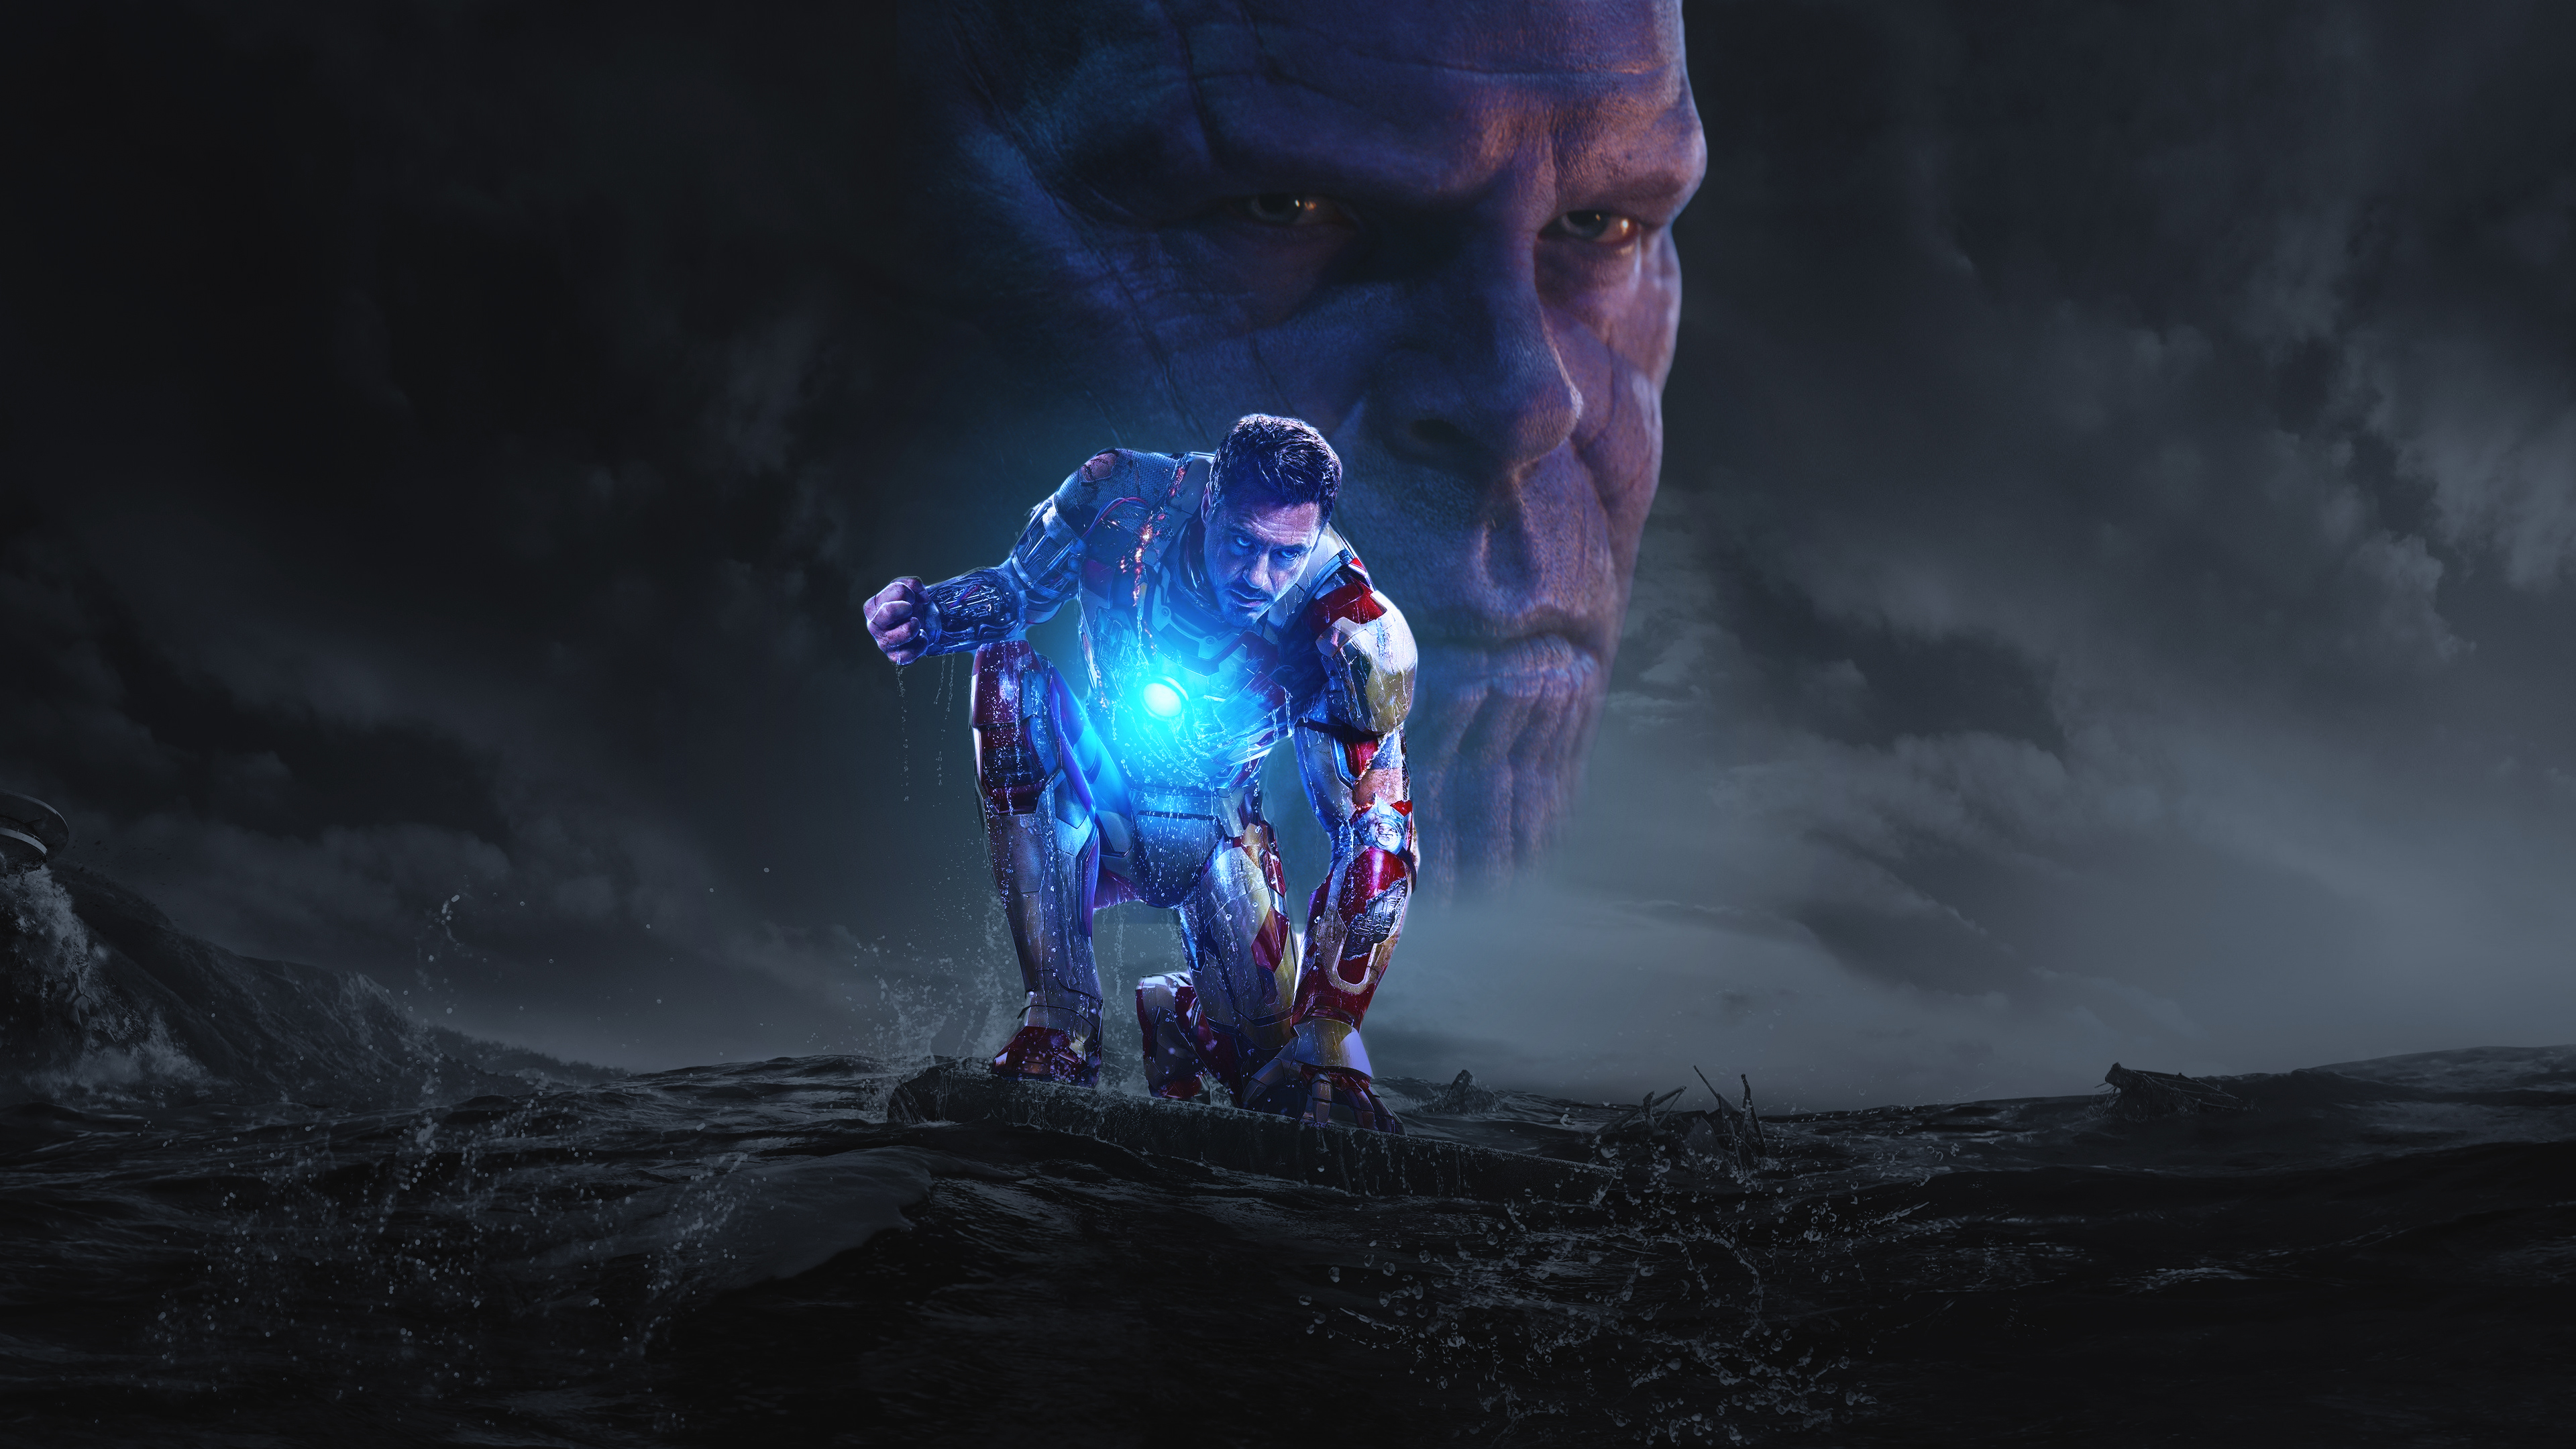 Iron Man and Thanos 4k Ultra HD Wallpaper | Background ...